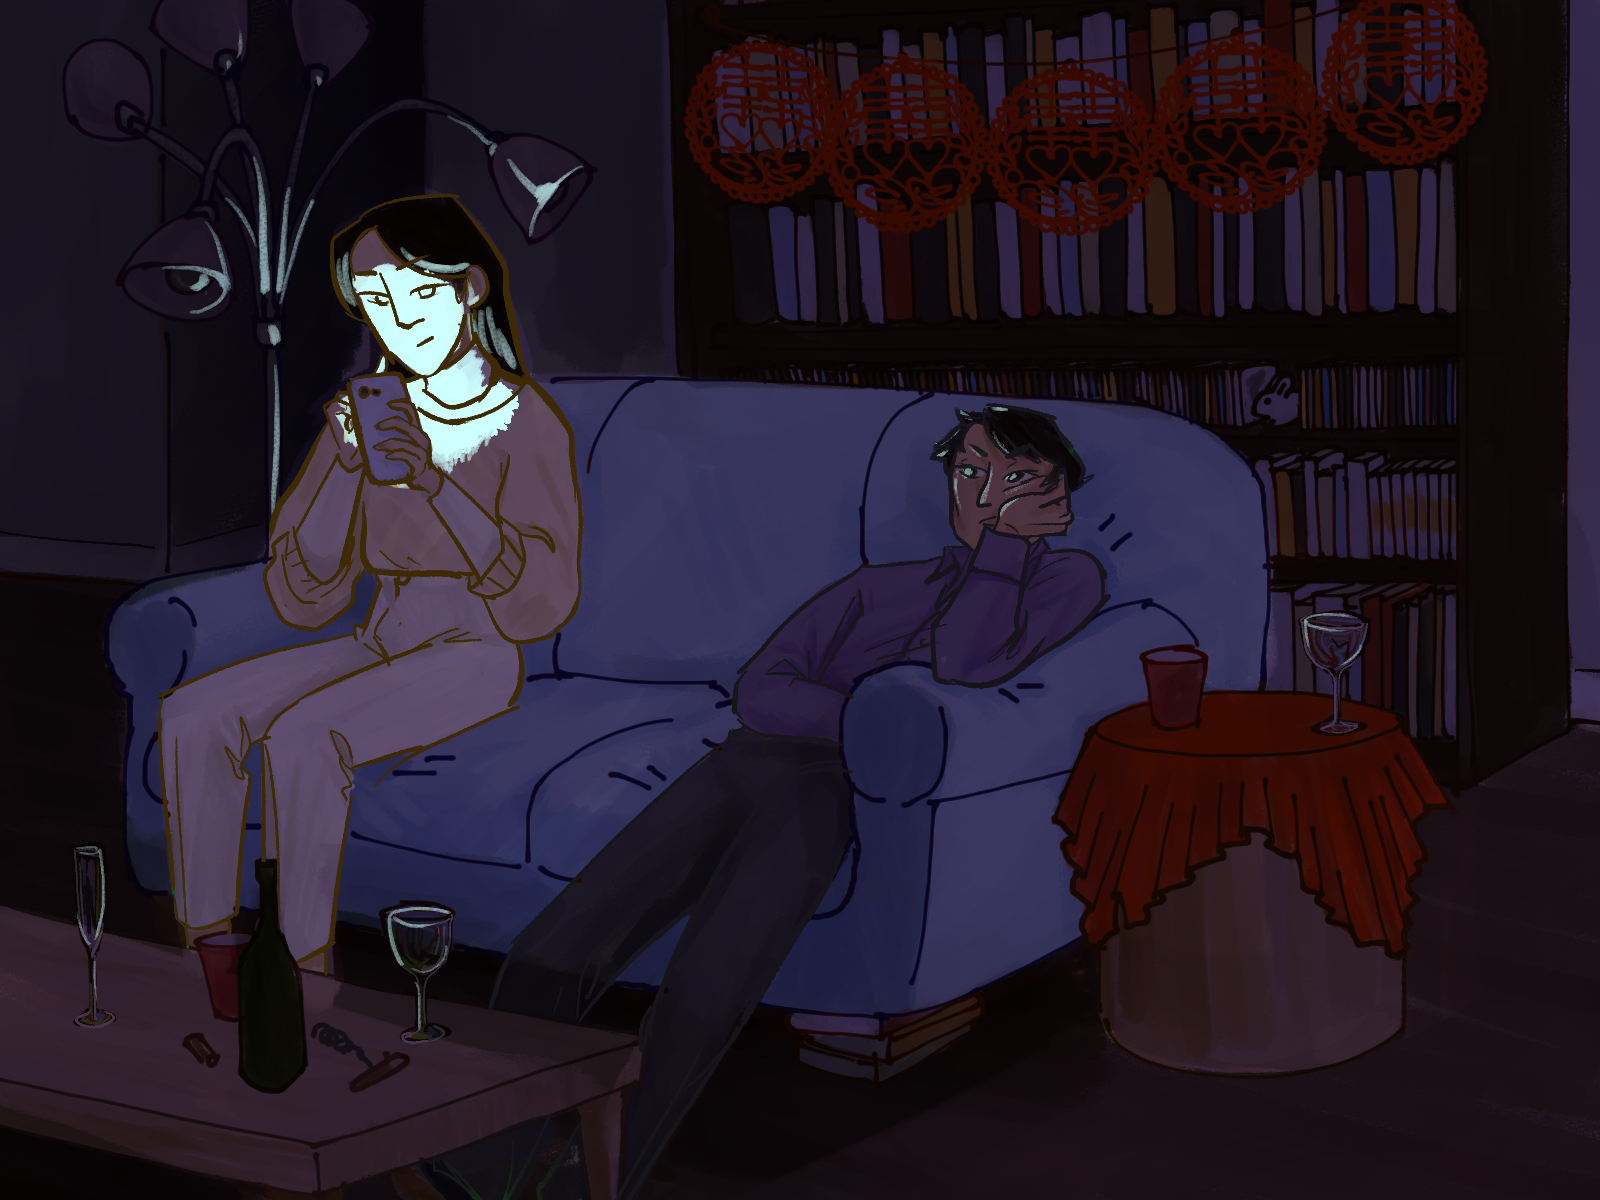 Lan Zhan and Jiang Cheng sitting on a couch surrounded by party decorations